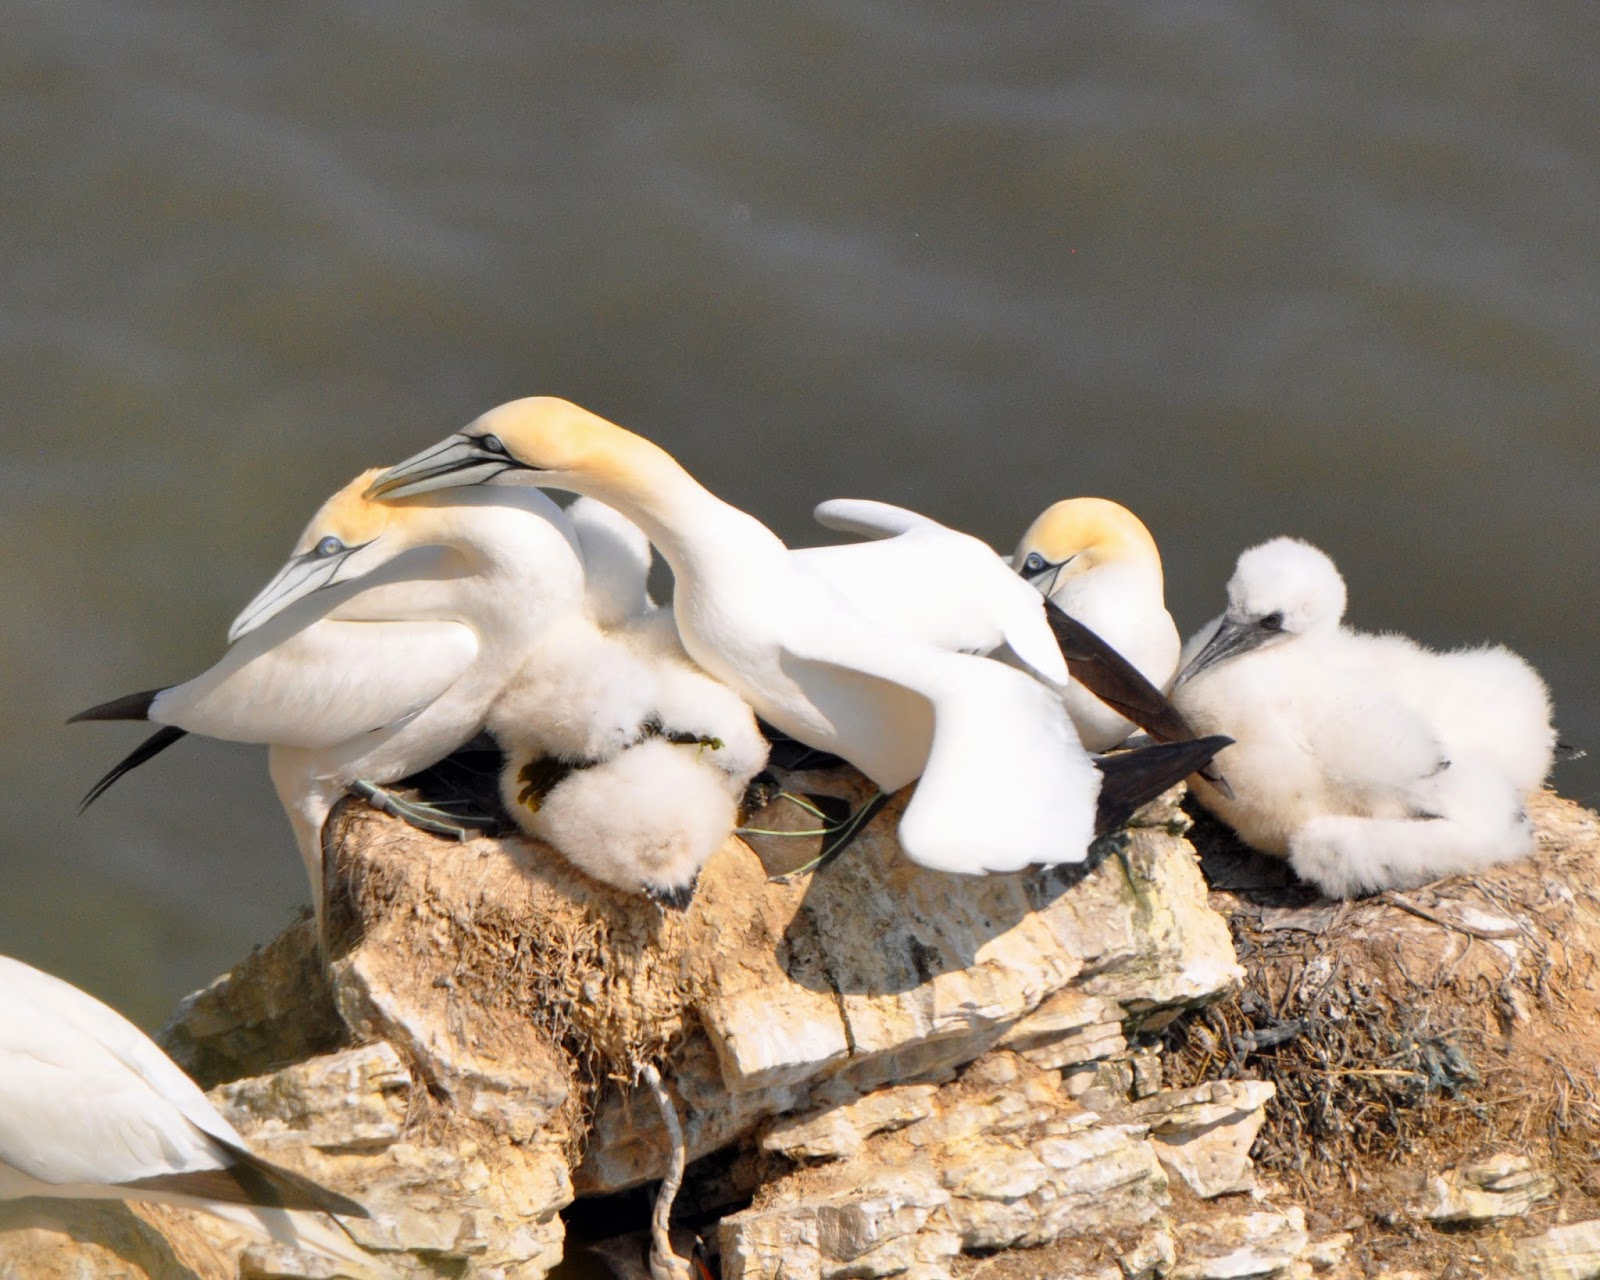 adult gannet preening mate with chick under them in nest